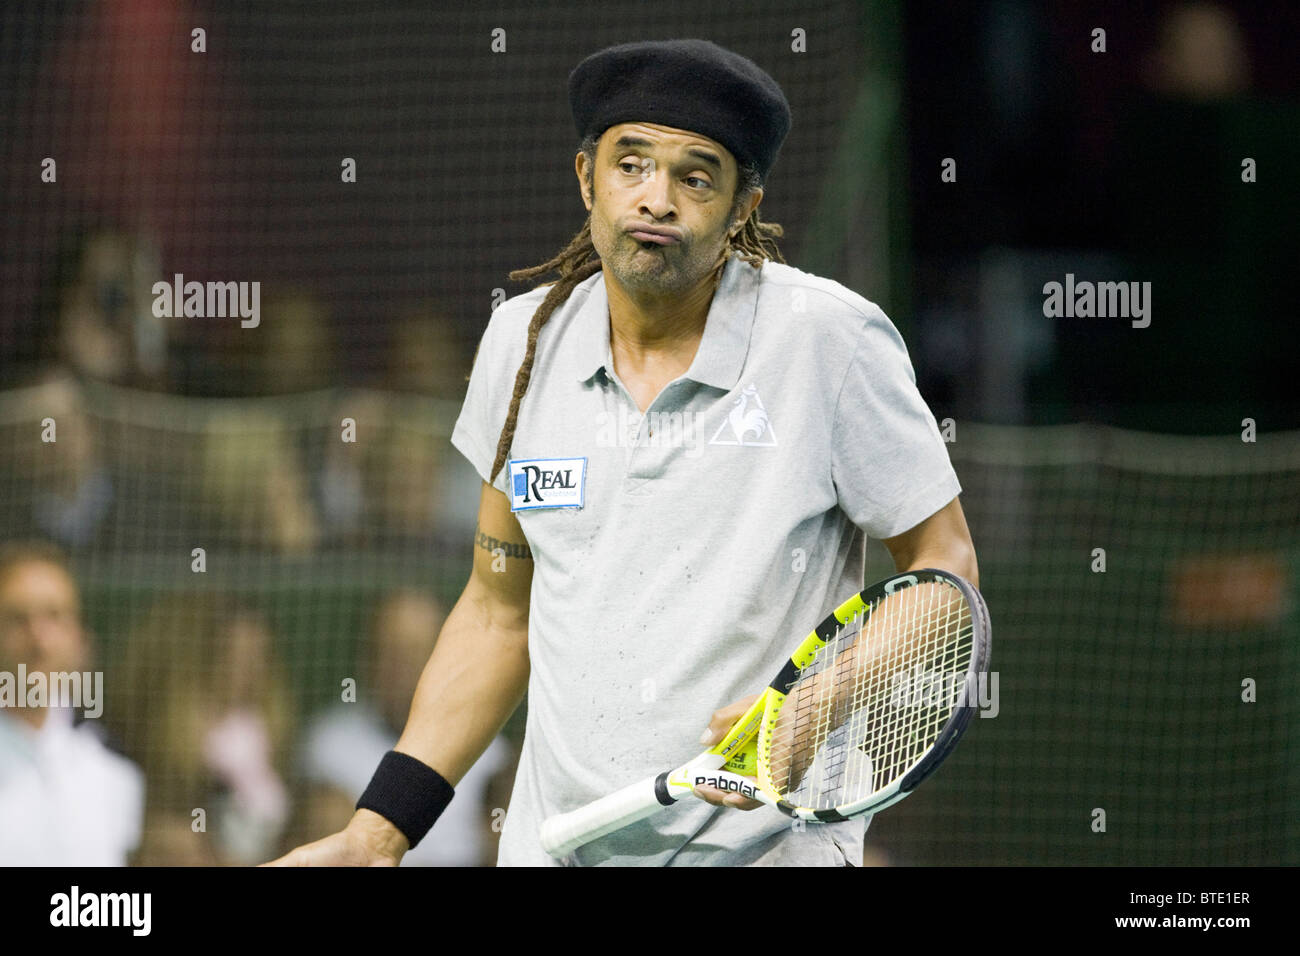 Yannick Noah at a show tennis match in Luxembourg Stock